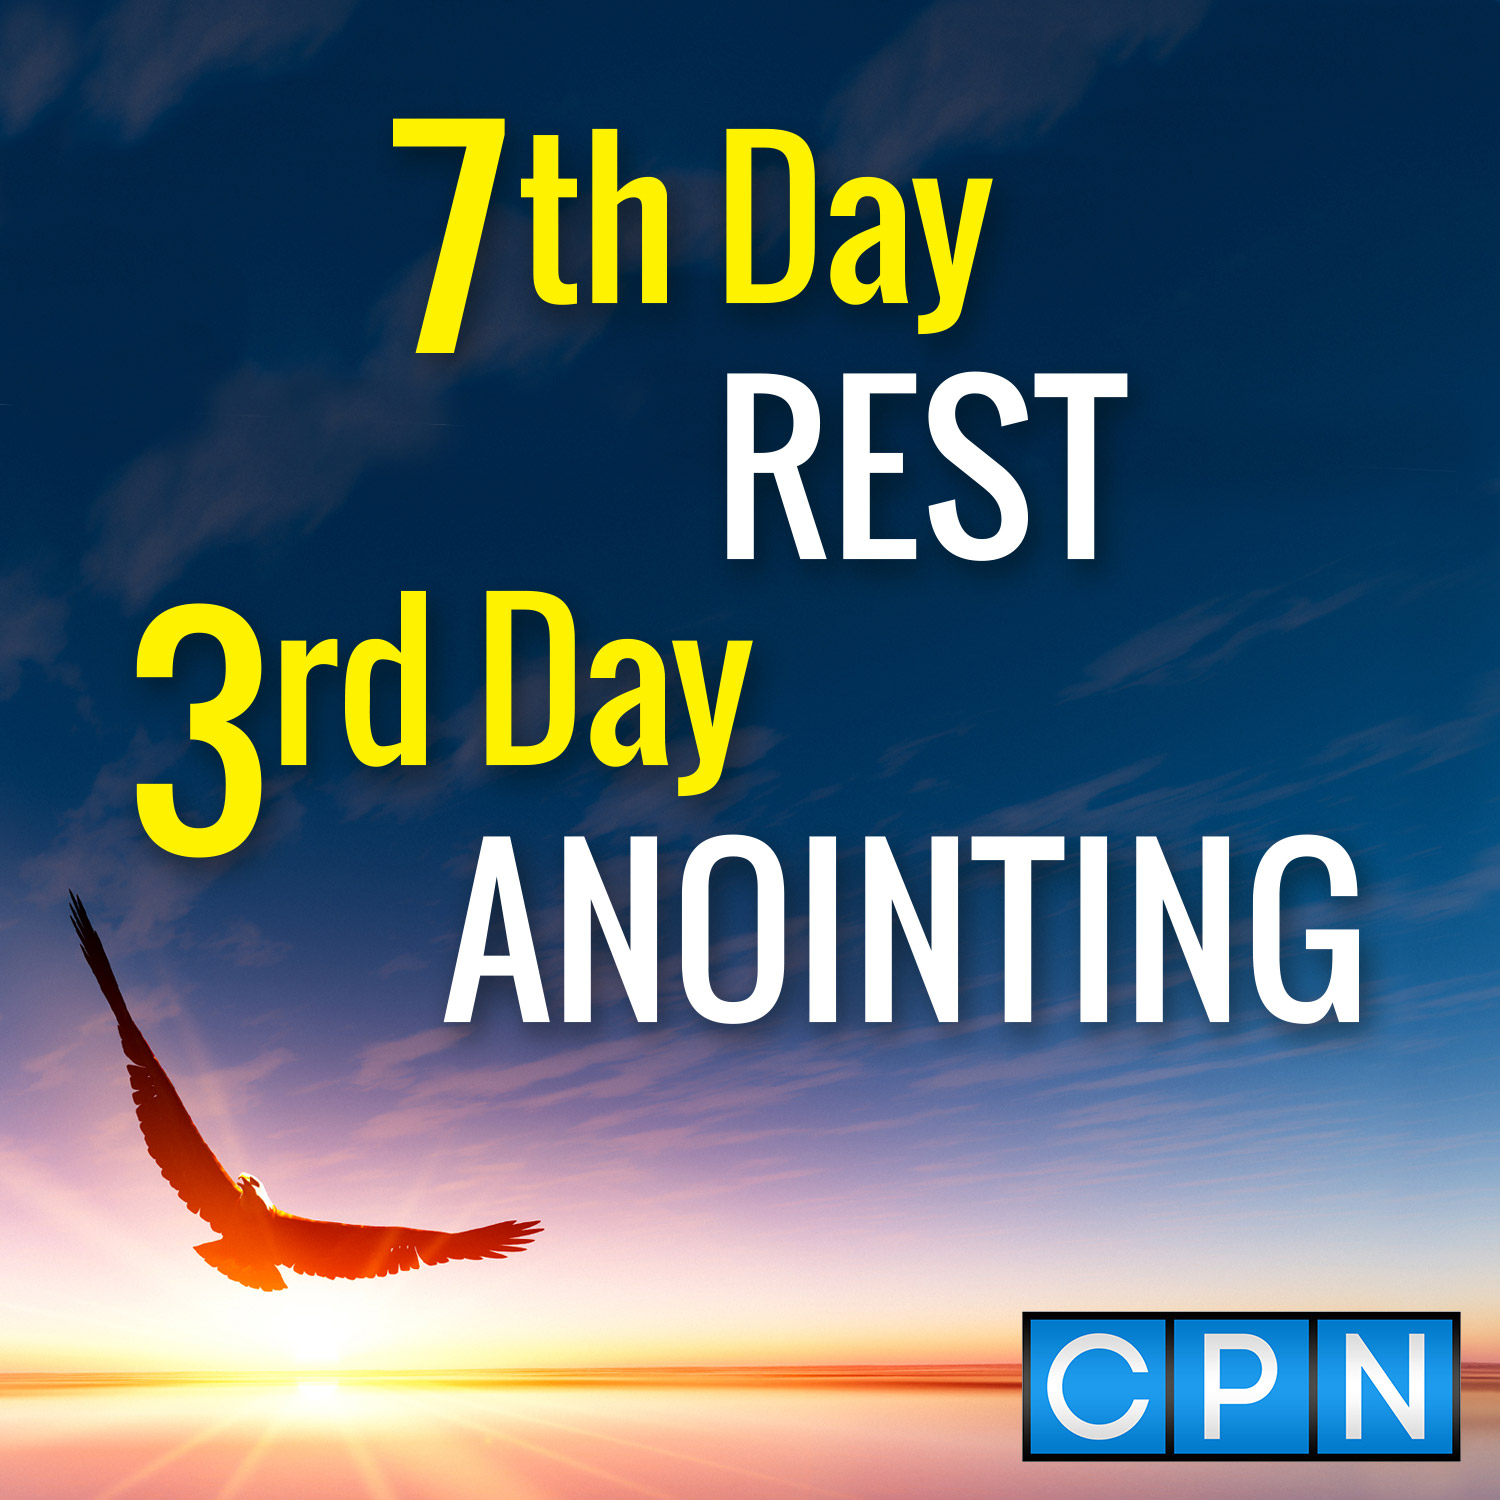 7th Day Rest, 3rd Day Anointing